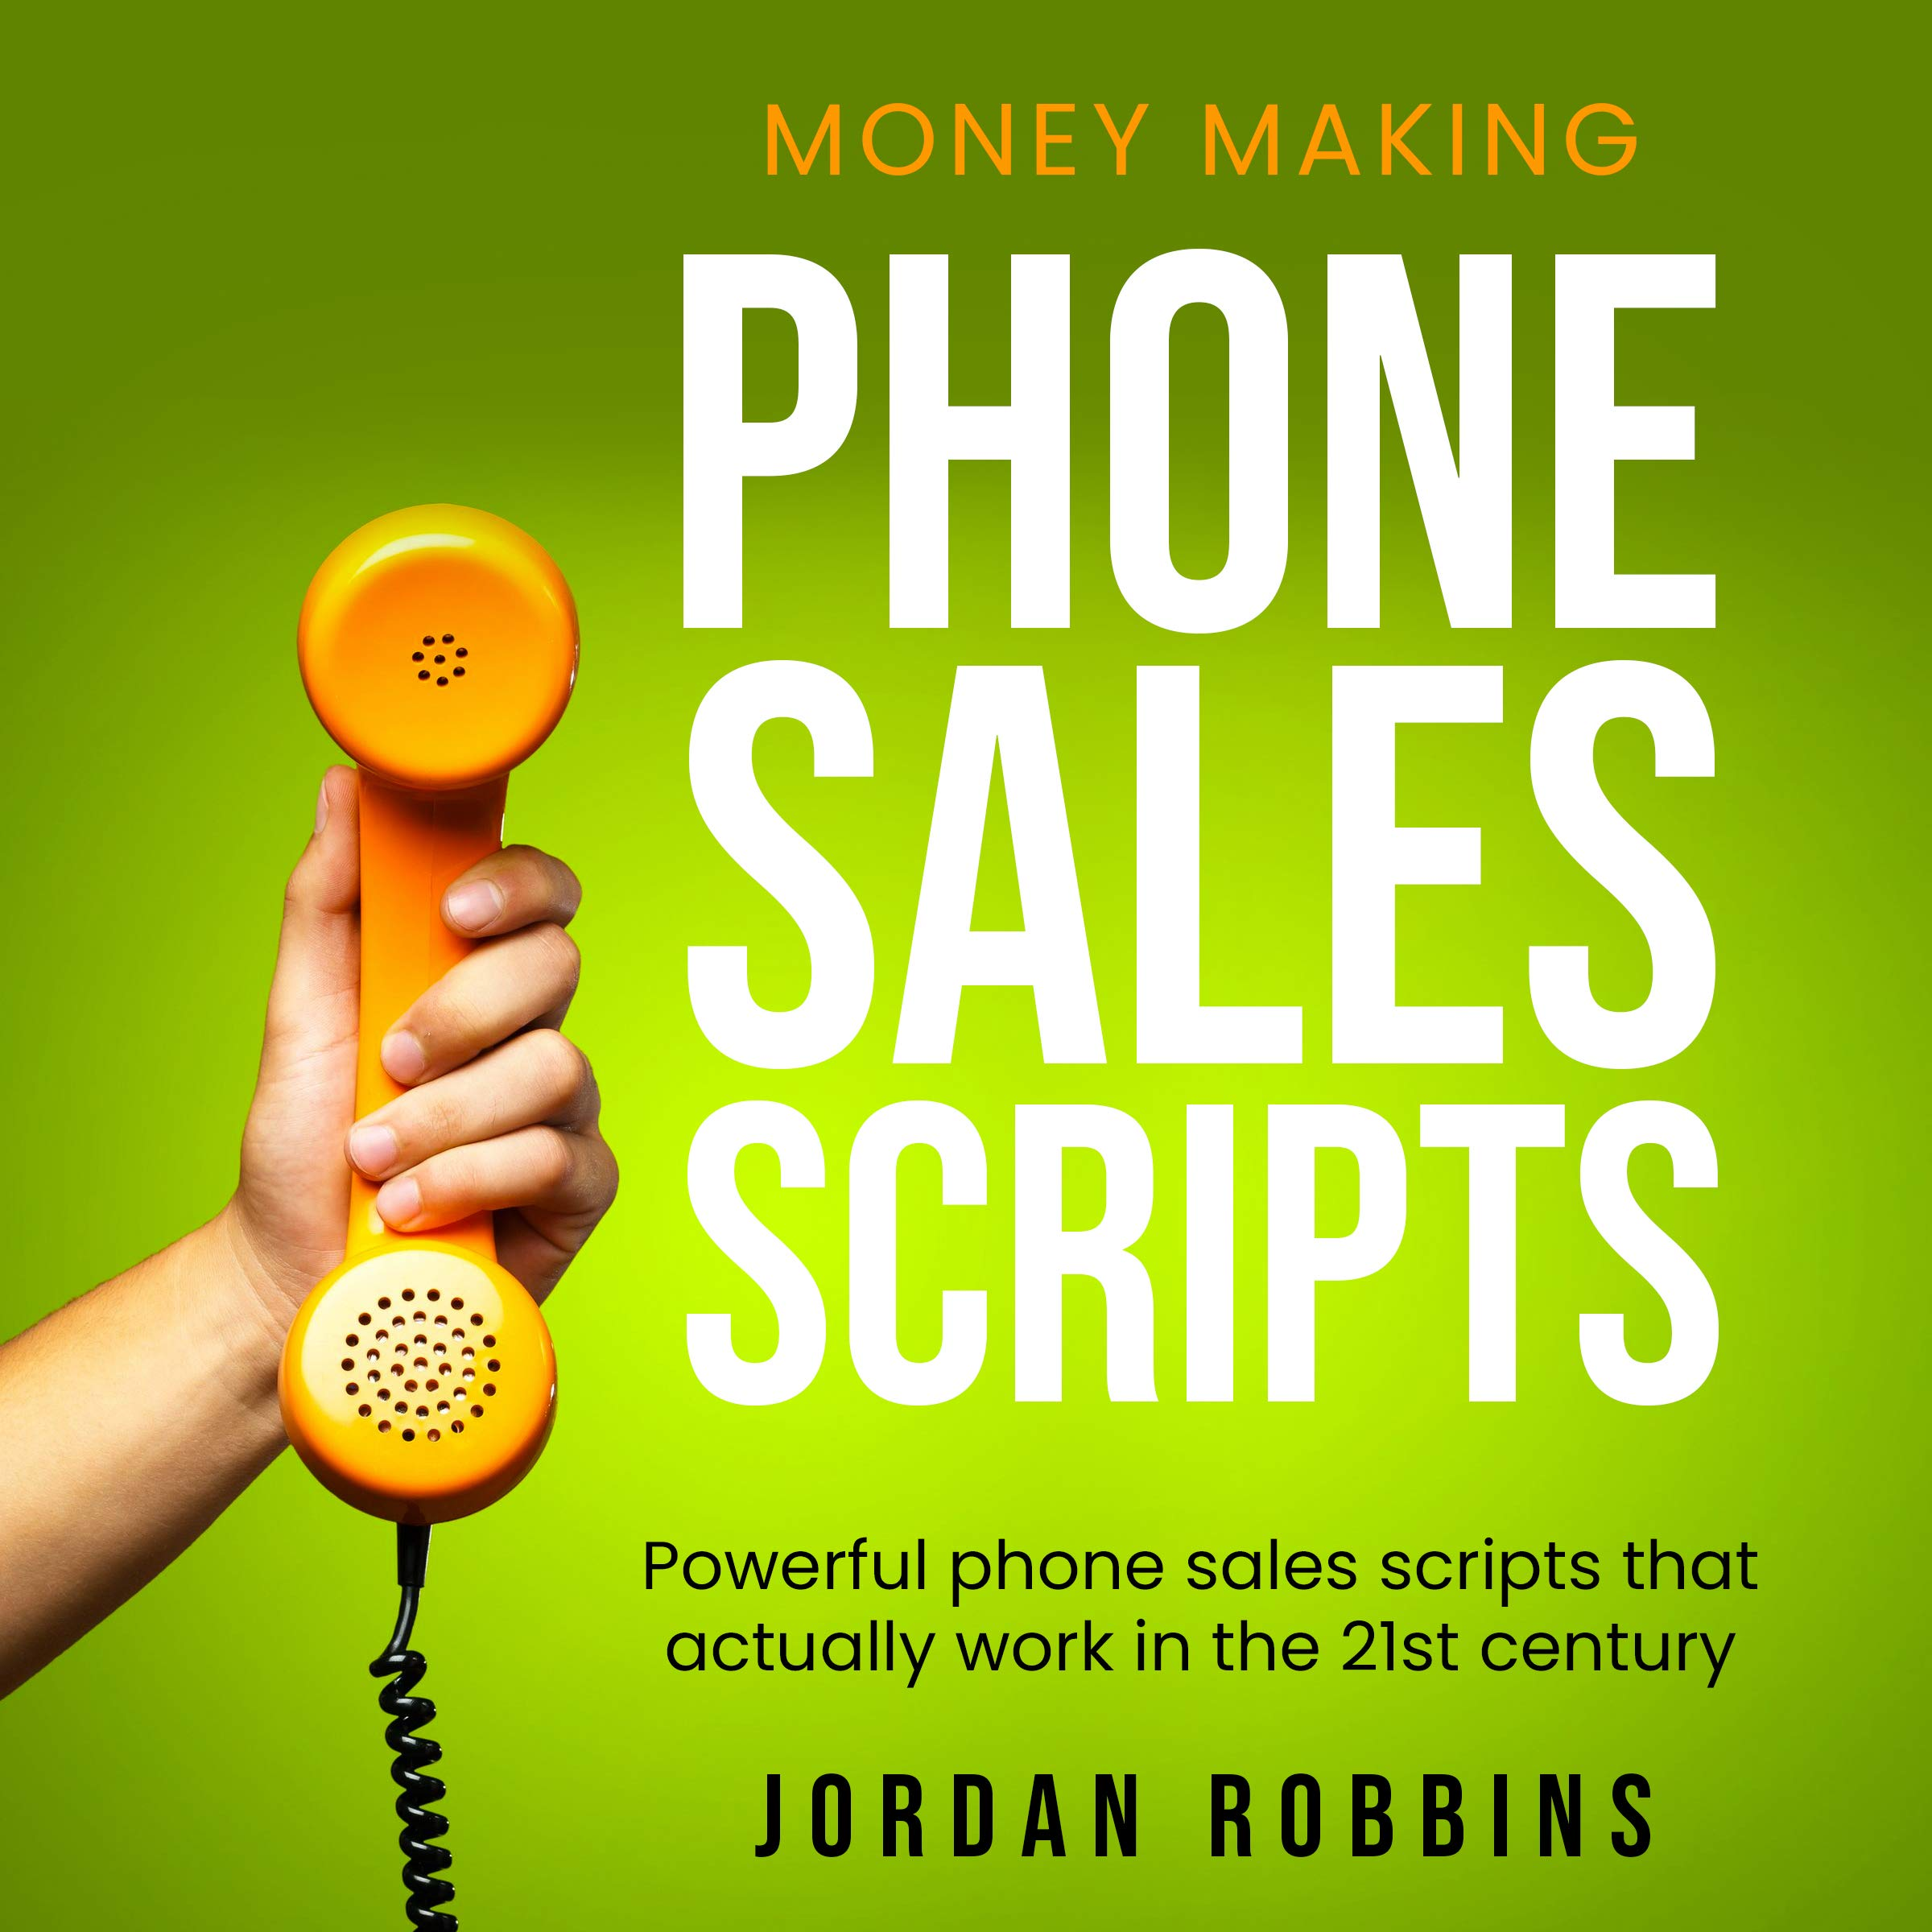 Phone Sales: +300 Brilliant Sales Scripts for Phone Sales with Word-for-Word Phrases, Rebuttals and More!